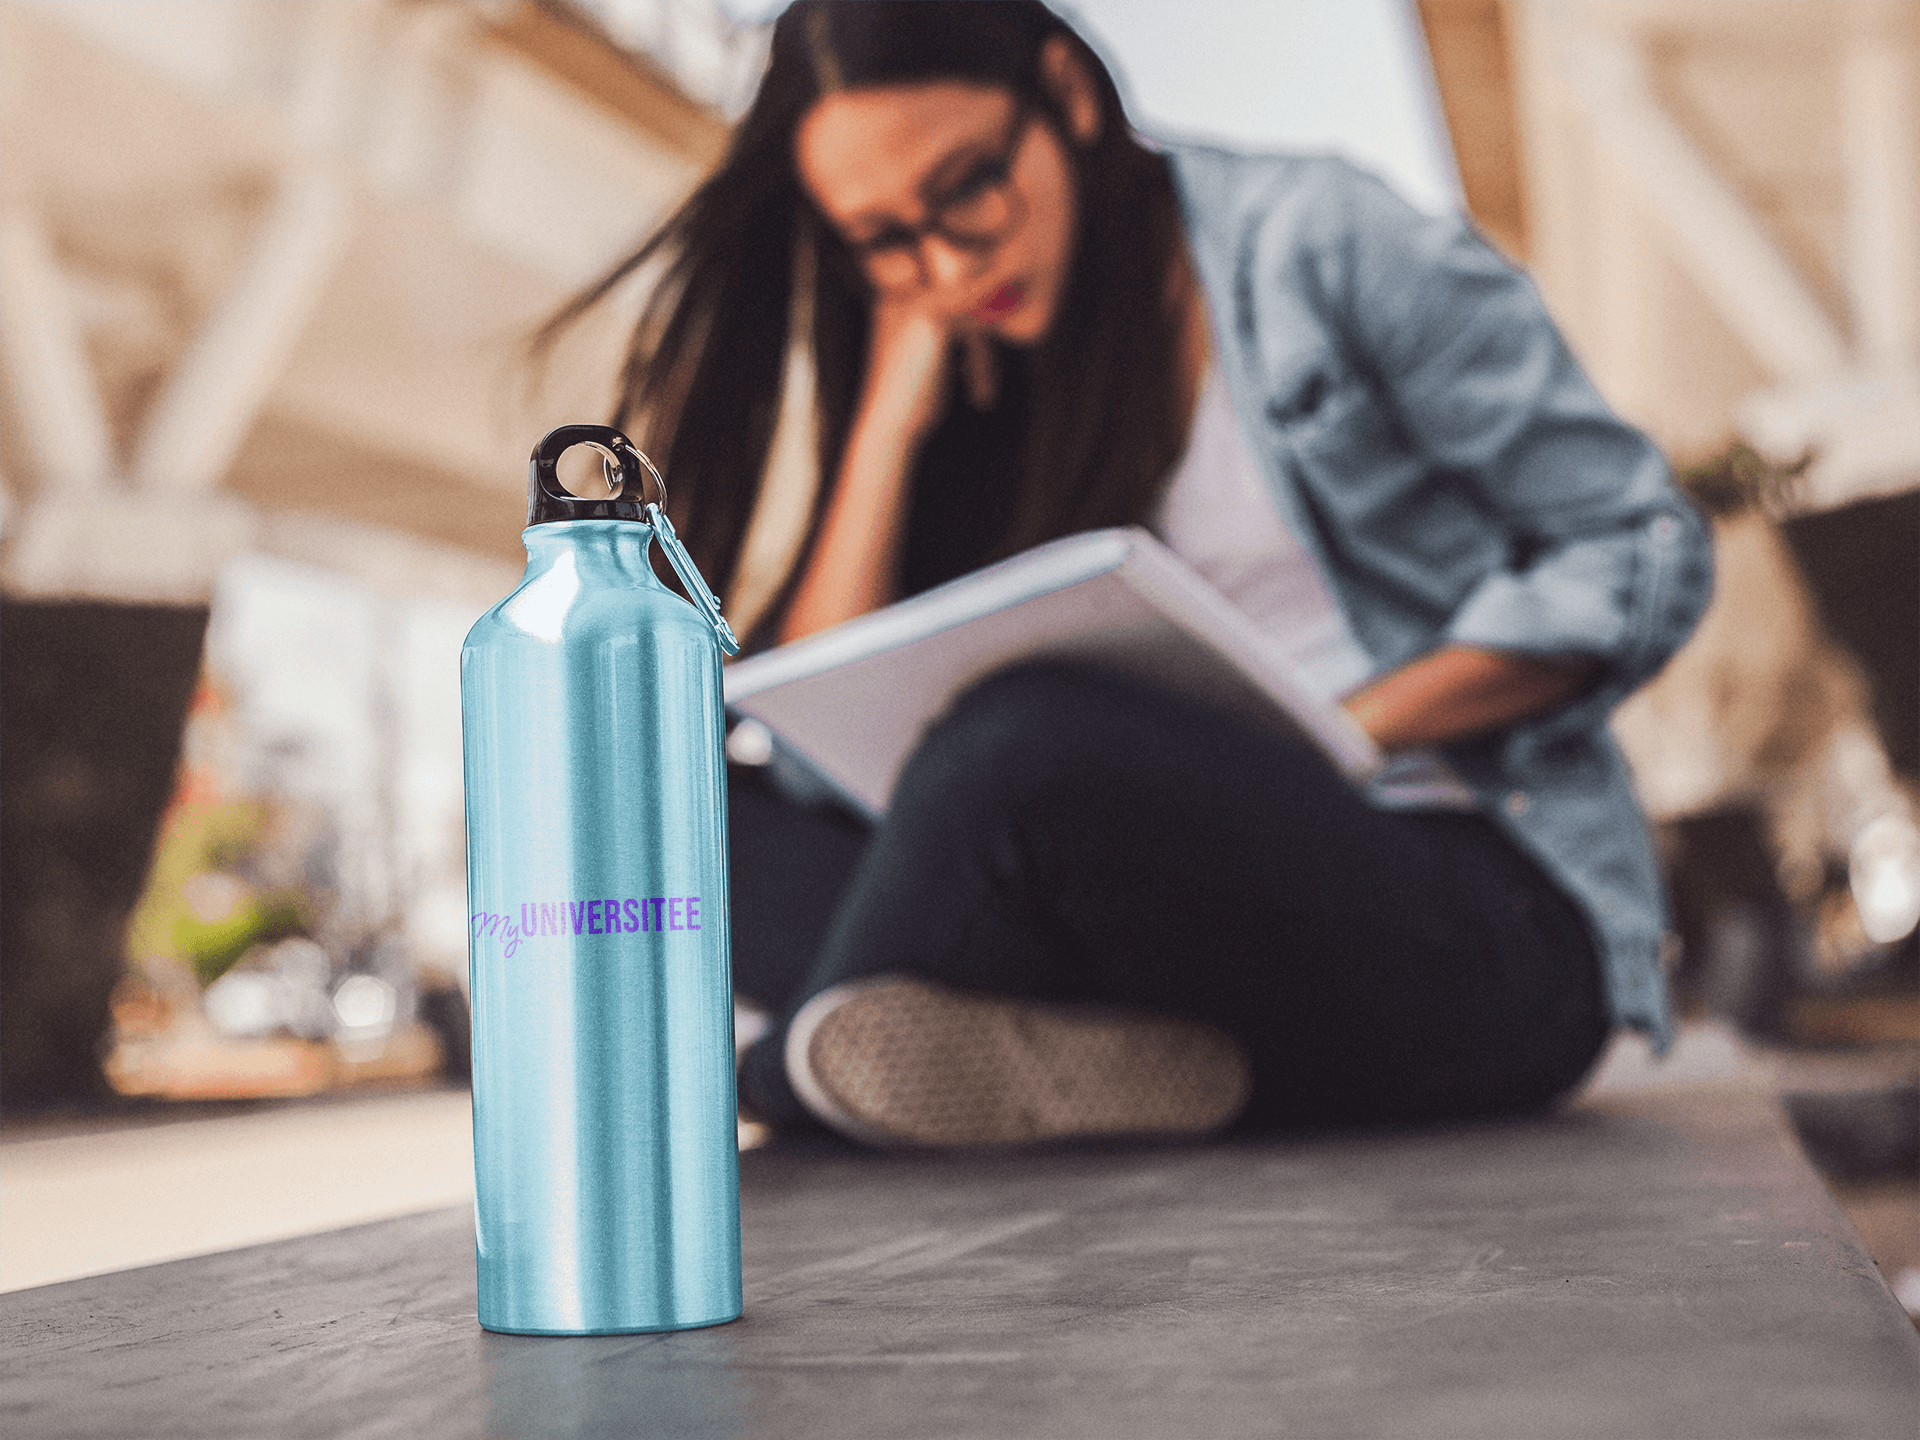 girl-sitting-down-reading-with-an-aluminum-water-mockup-bottle-near-her-a14886